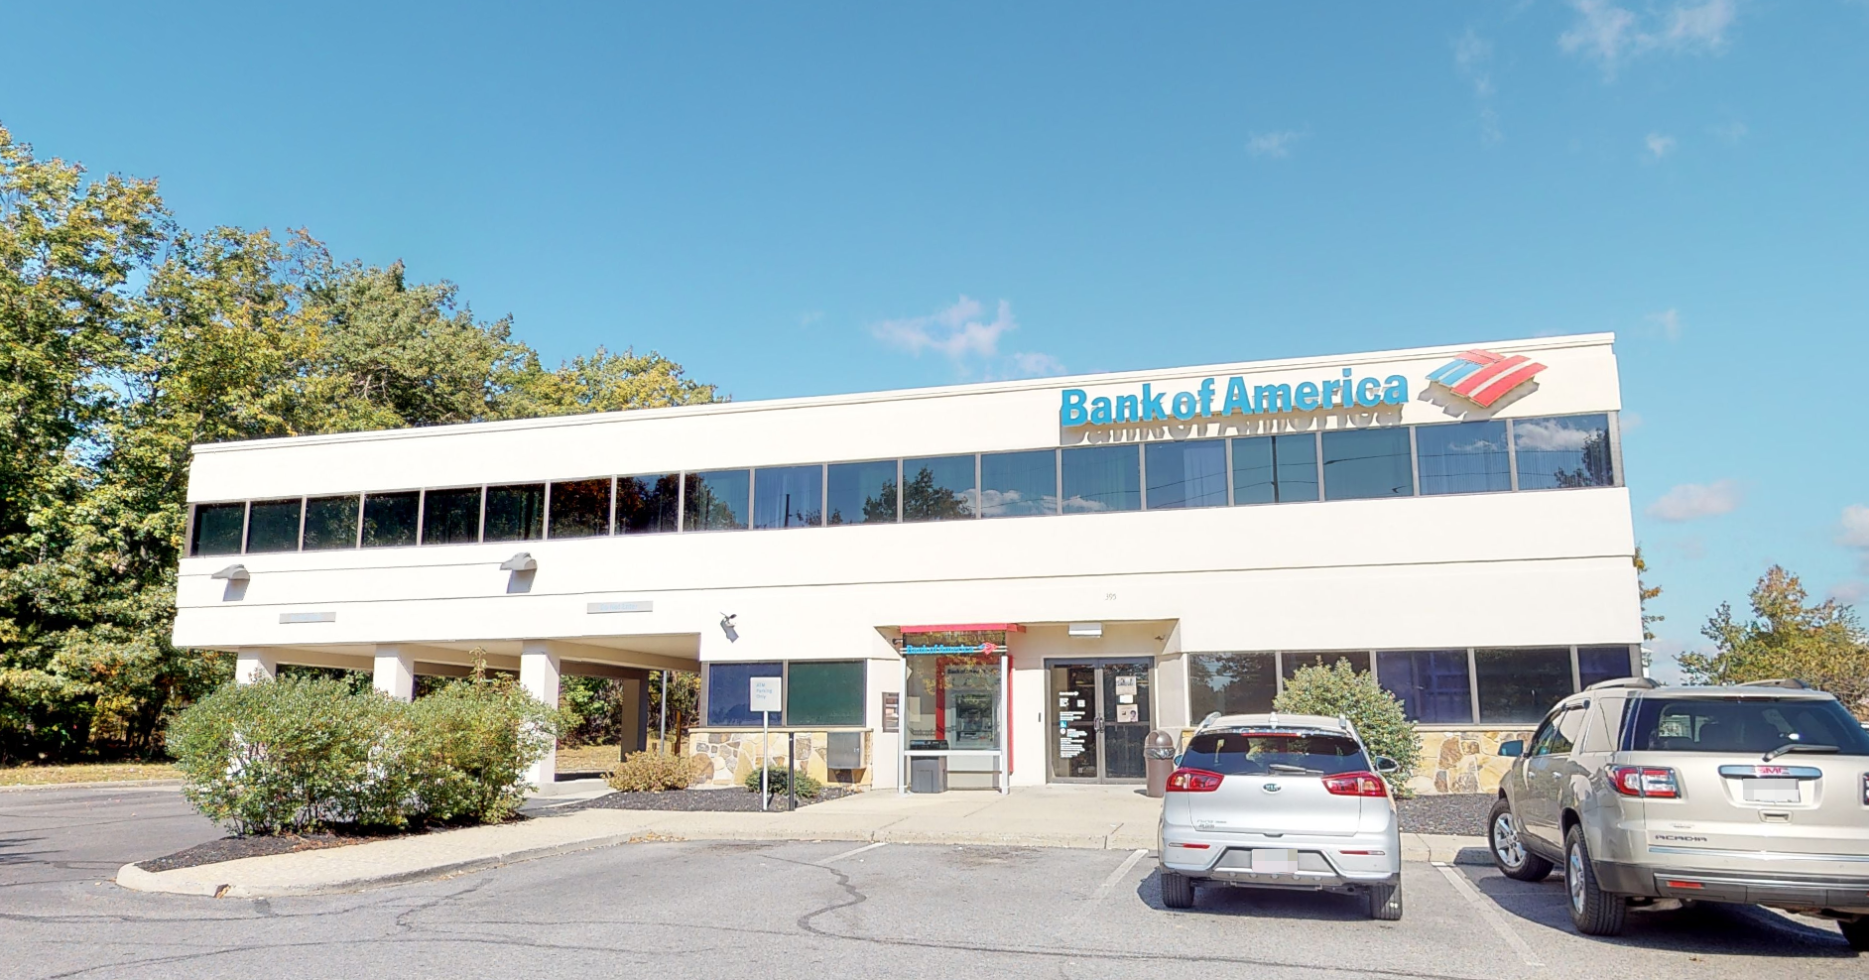 Bank of America financial center with drive-thru ATM | 395 Route 70, Lakewood, NJ 08701